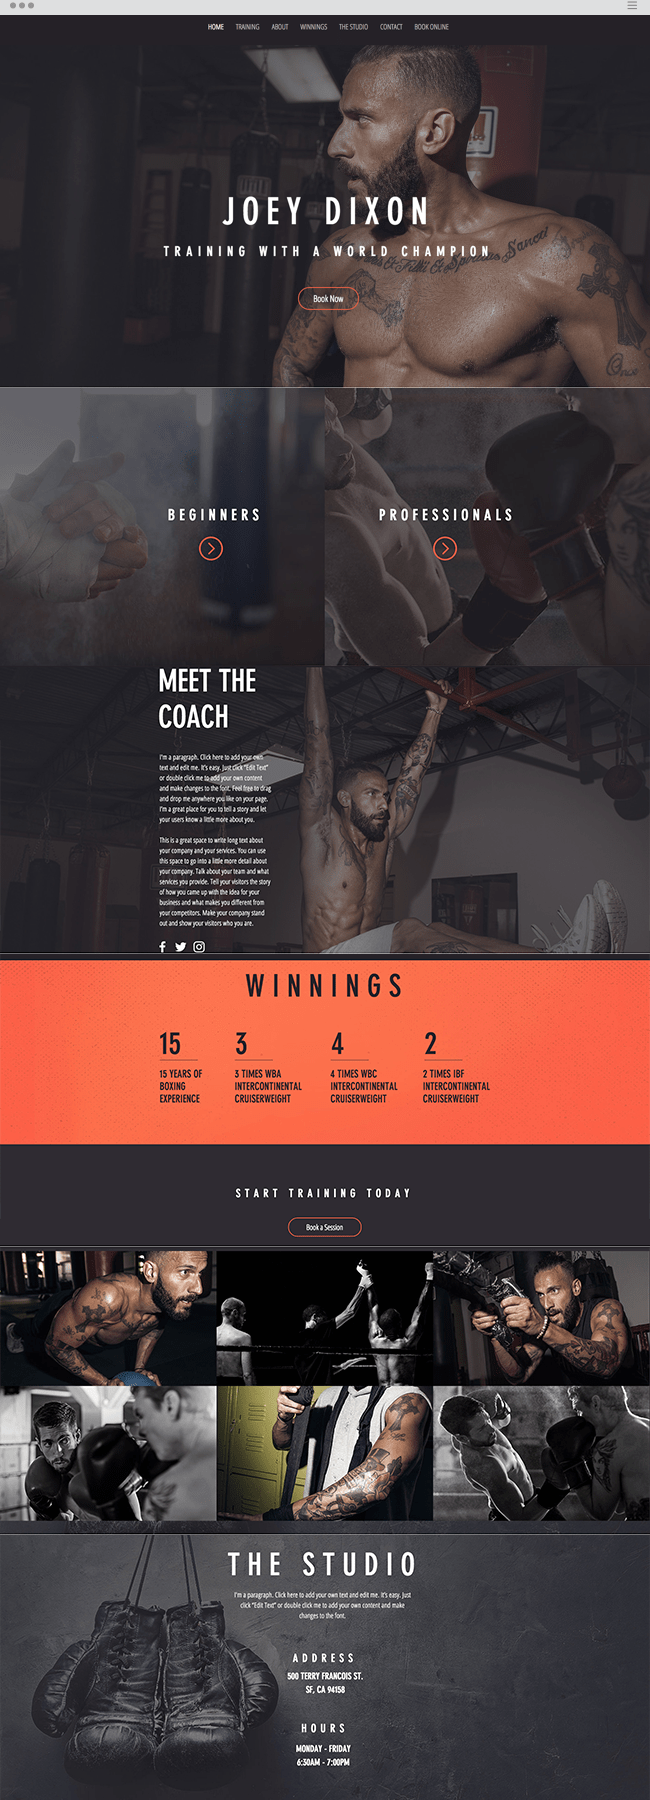 The Boxer Website Template WIX